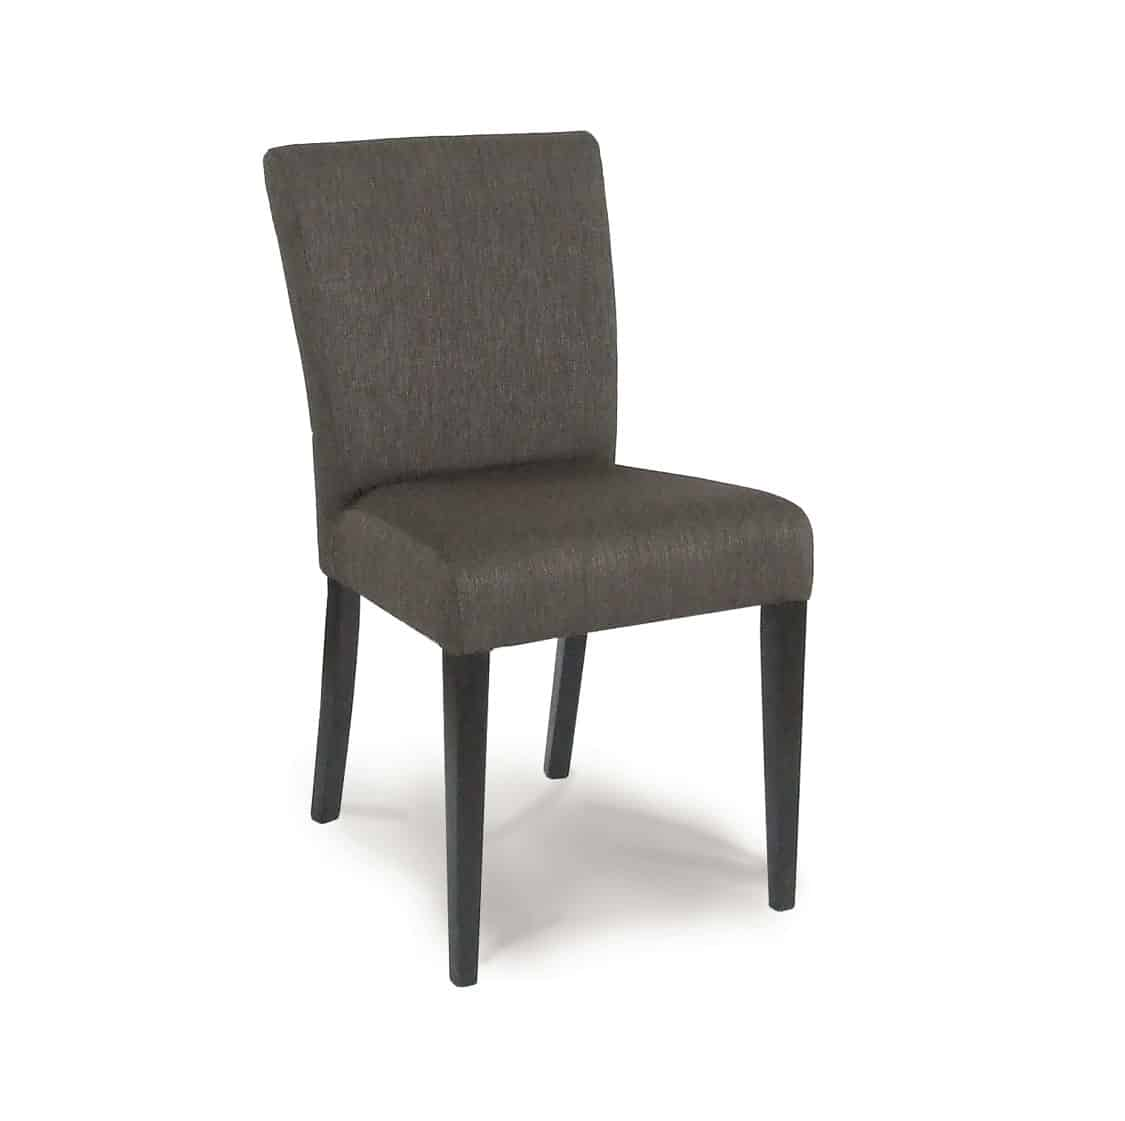 Lori side chair with classic legs at DeFrae Contract Furniture